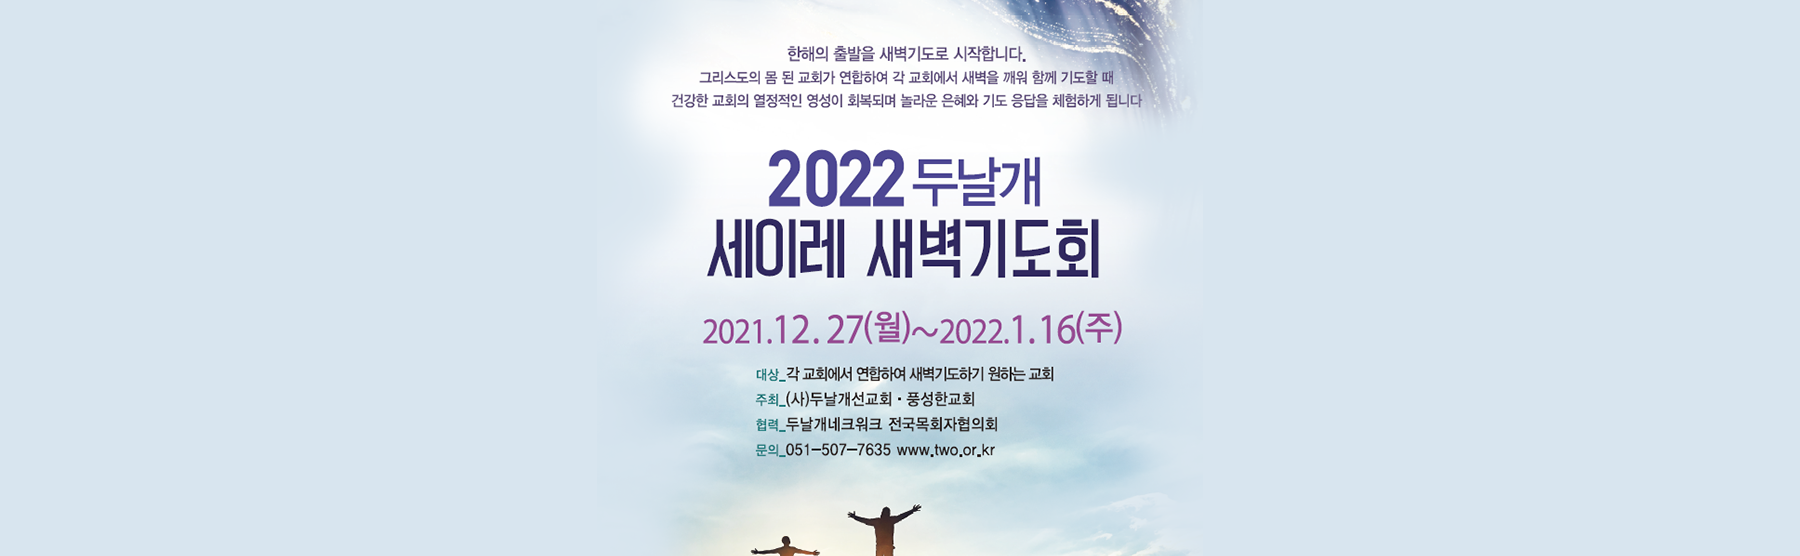 two-mbs-2022세이레